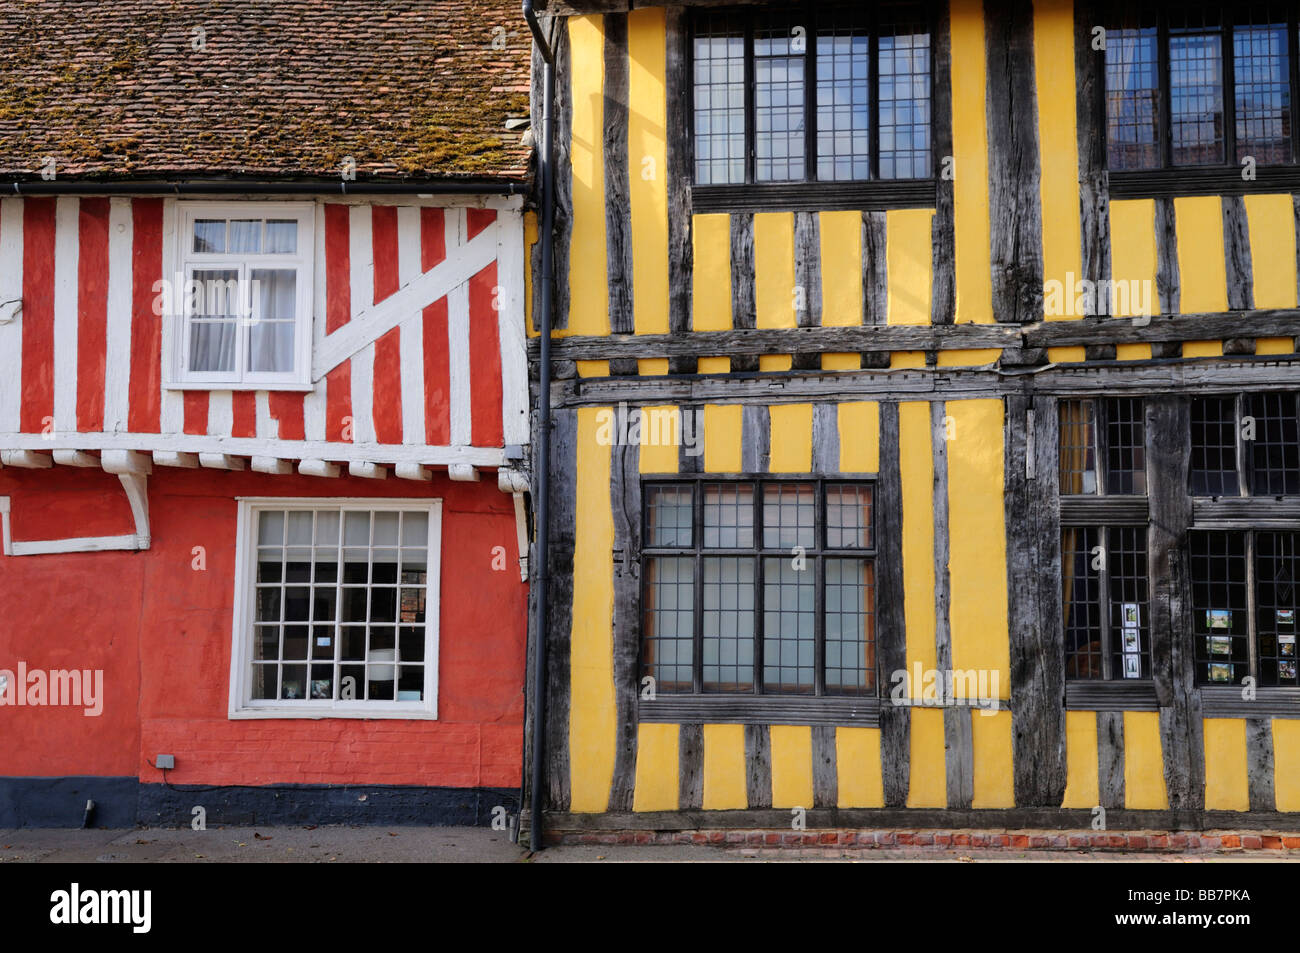 Colourful Half Timbered houses in Lavenham Suffolk England UK - Stock Image